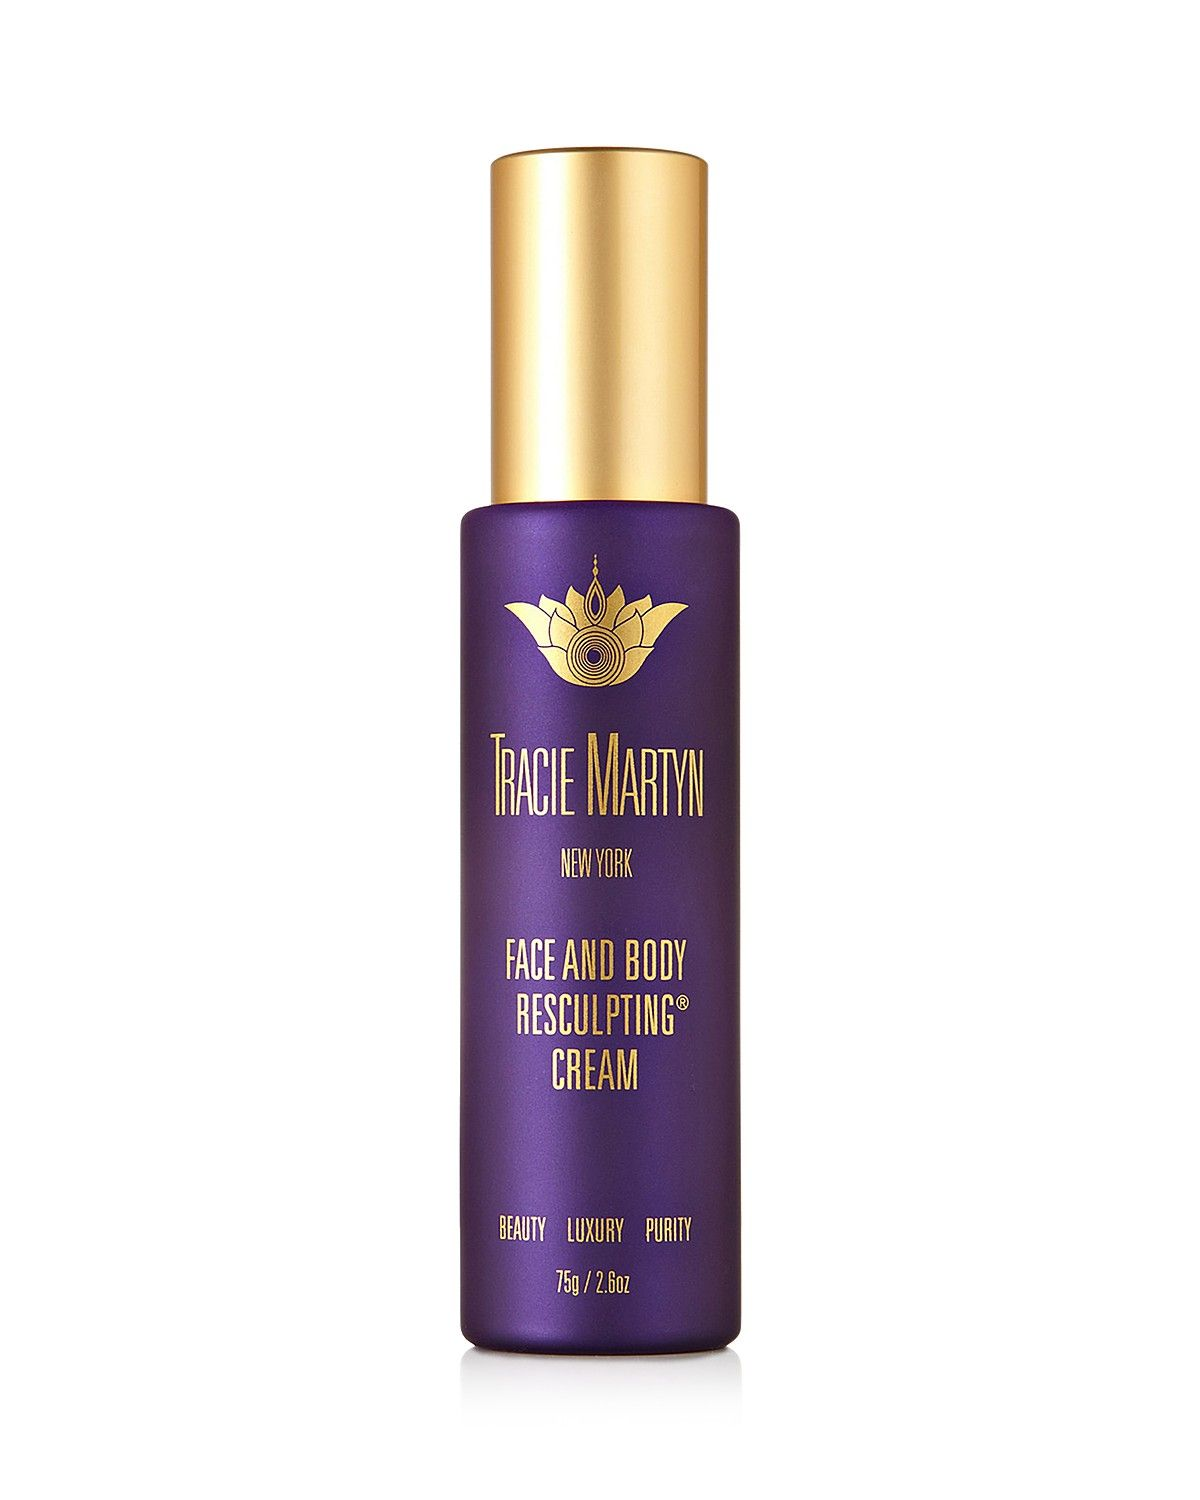 Tracie Martyn Face & Body Resculpting Cream, Travel Size ...